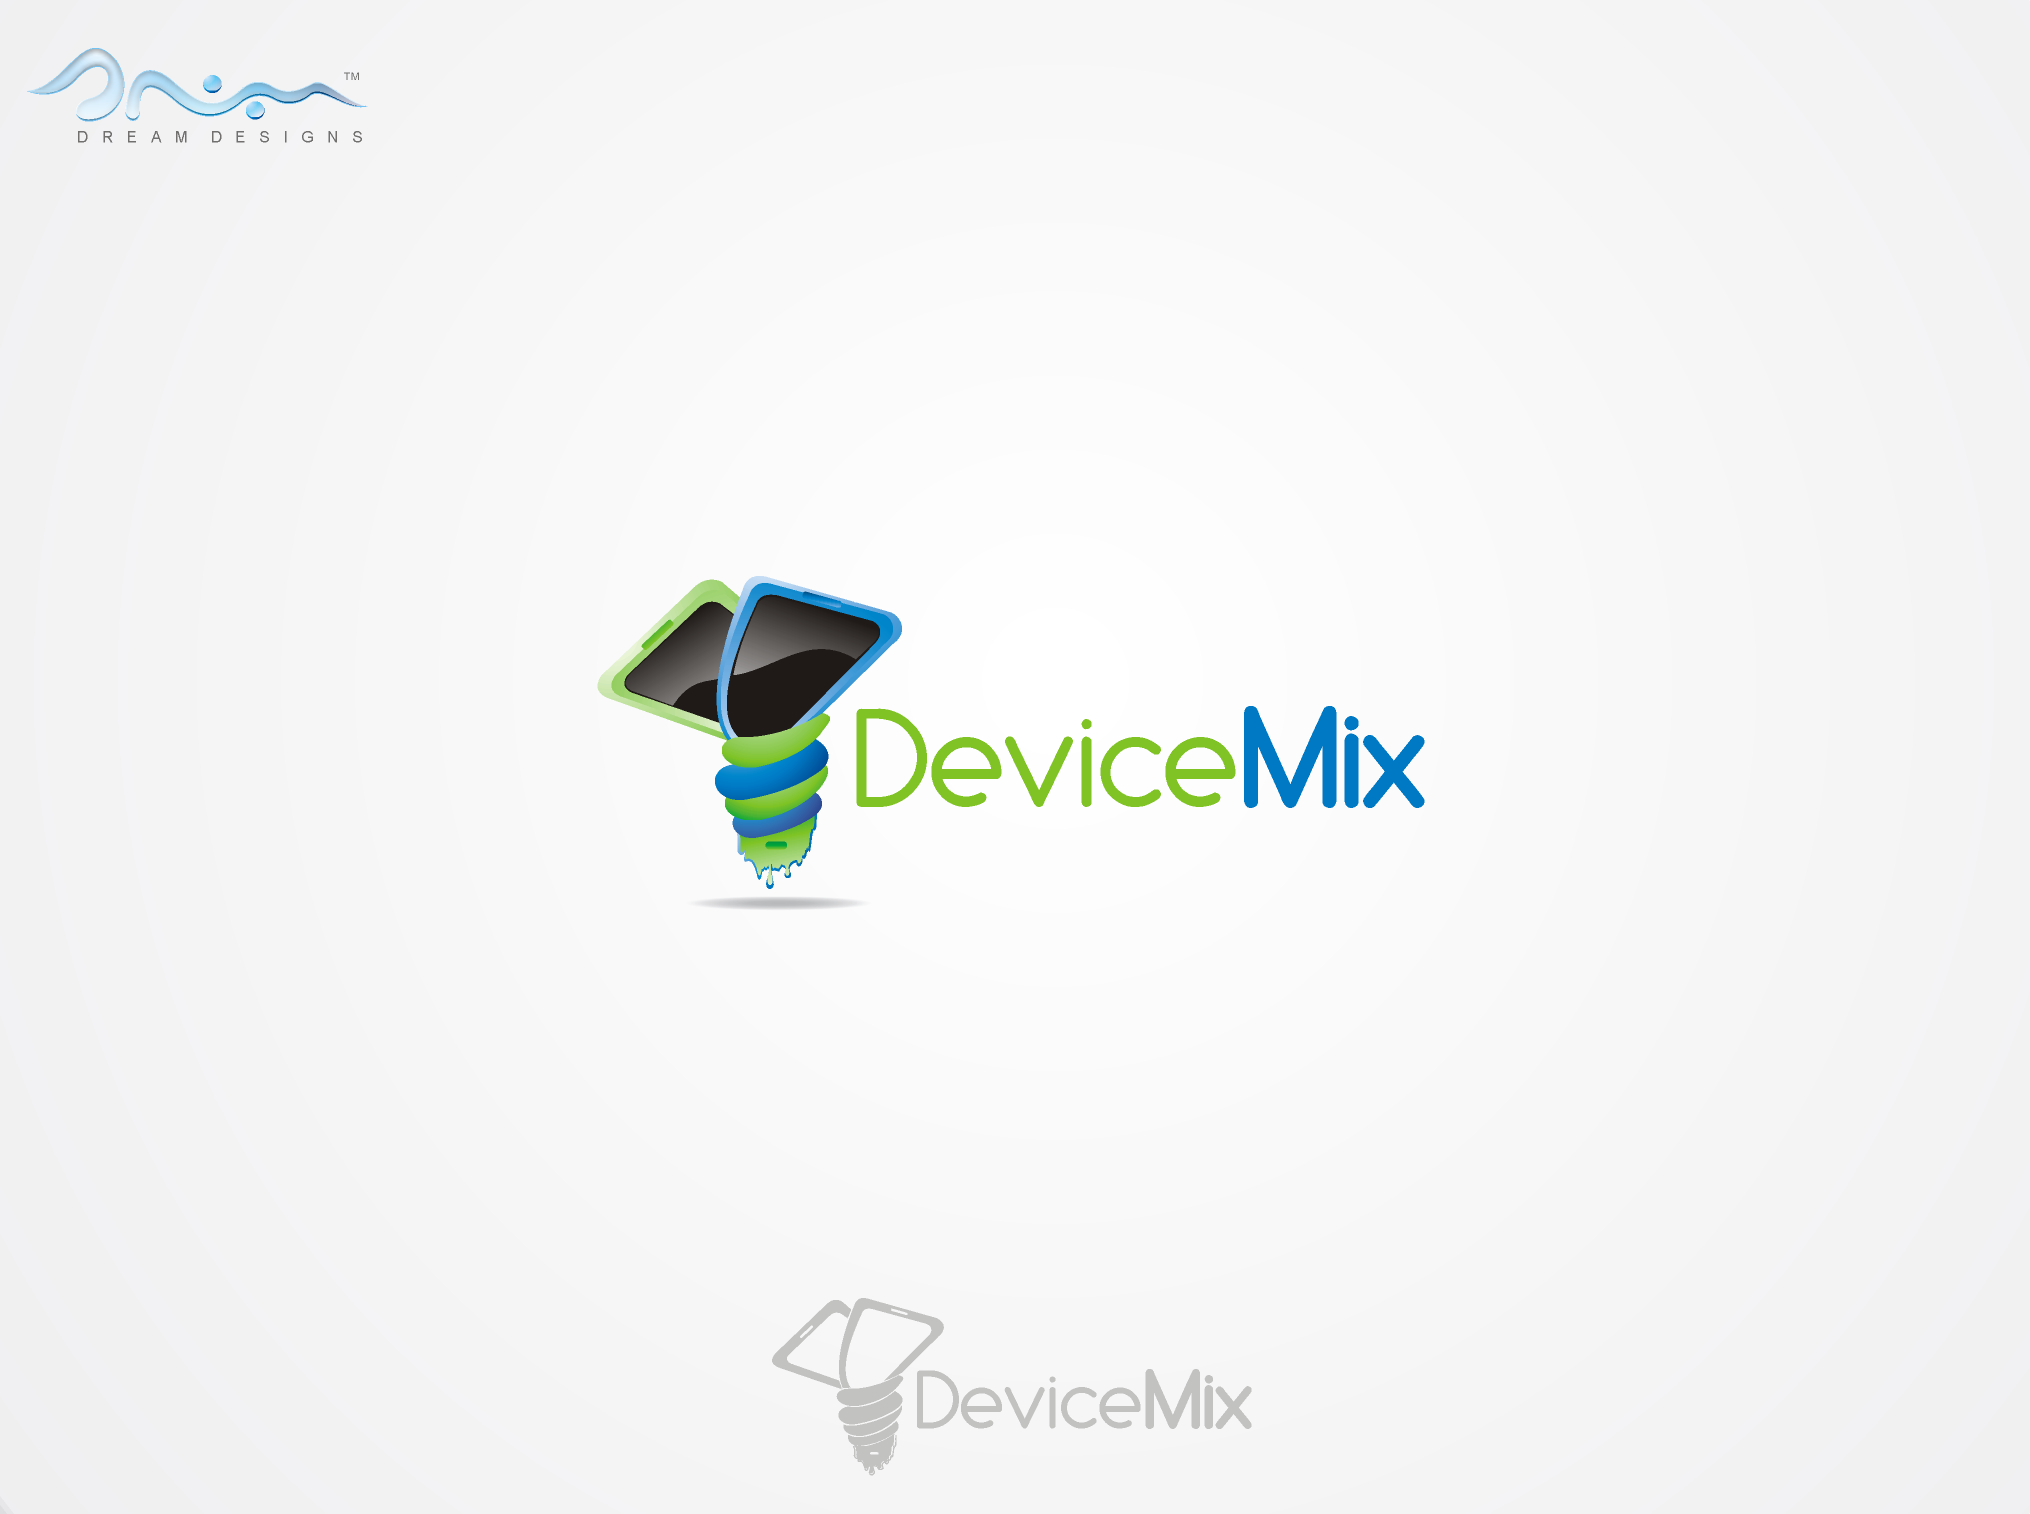 Fun and Edgy logo for DeviceMix